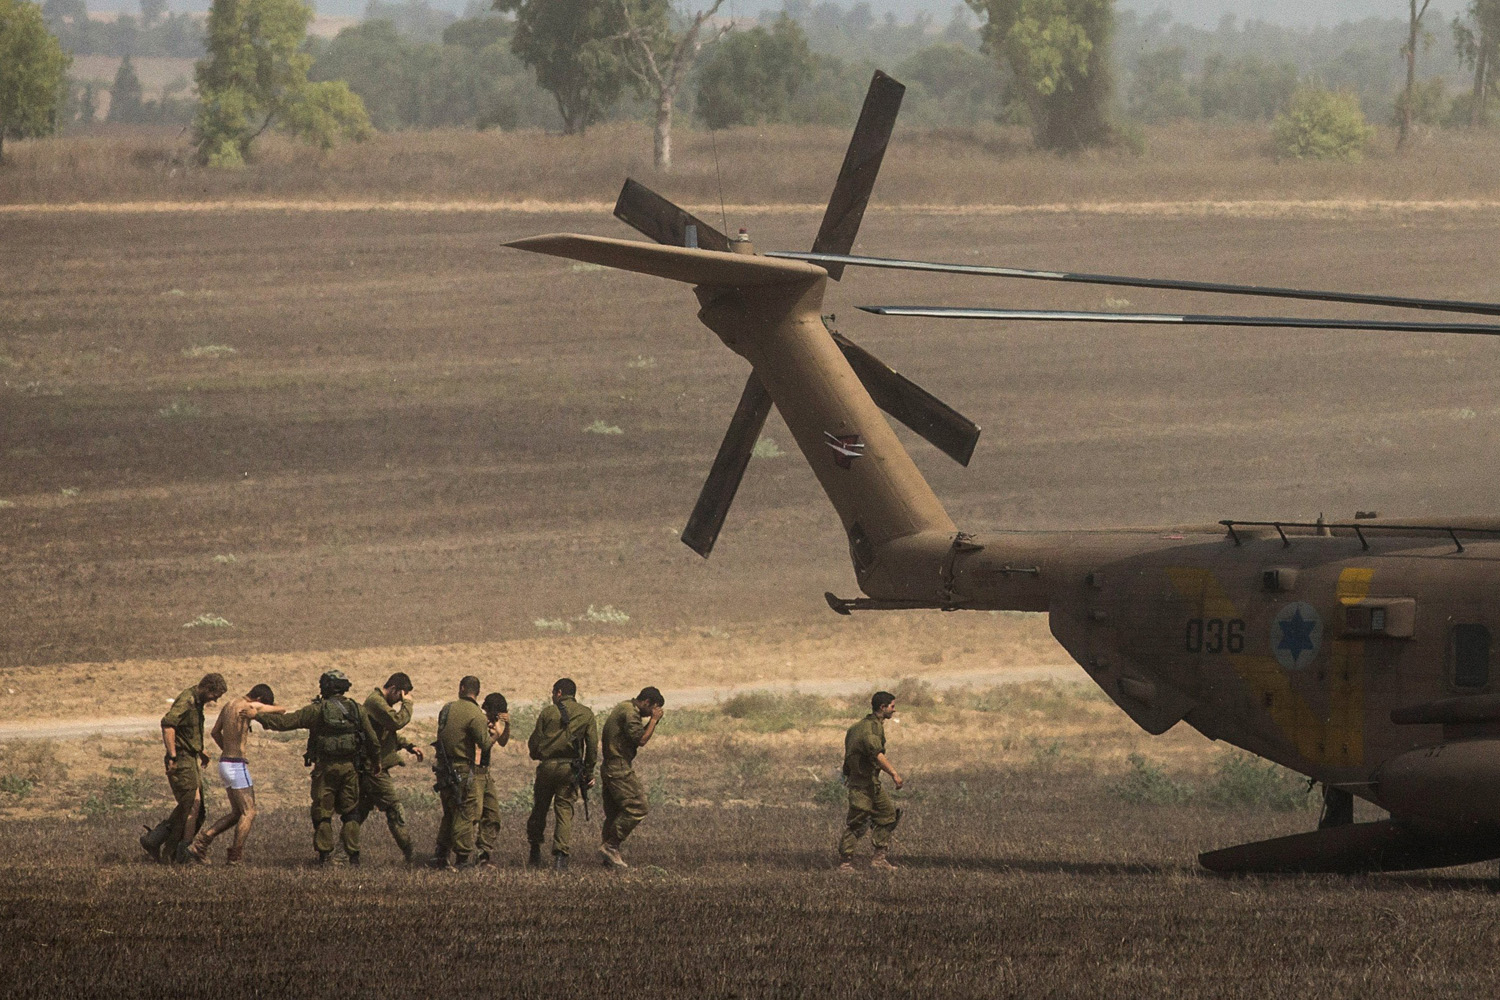 Jul. 23, 2014. Wounded Israeli soldiers are brought to a helicopter near Kafar Aza, Israel. As operation  Protective Edge   enters its 16th day, 29 Israeli soldiers have been killed and over 600 Palestinians have been killed in Gaza.